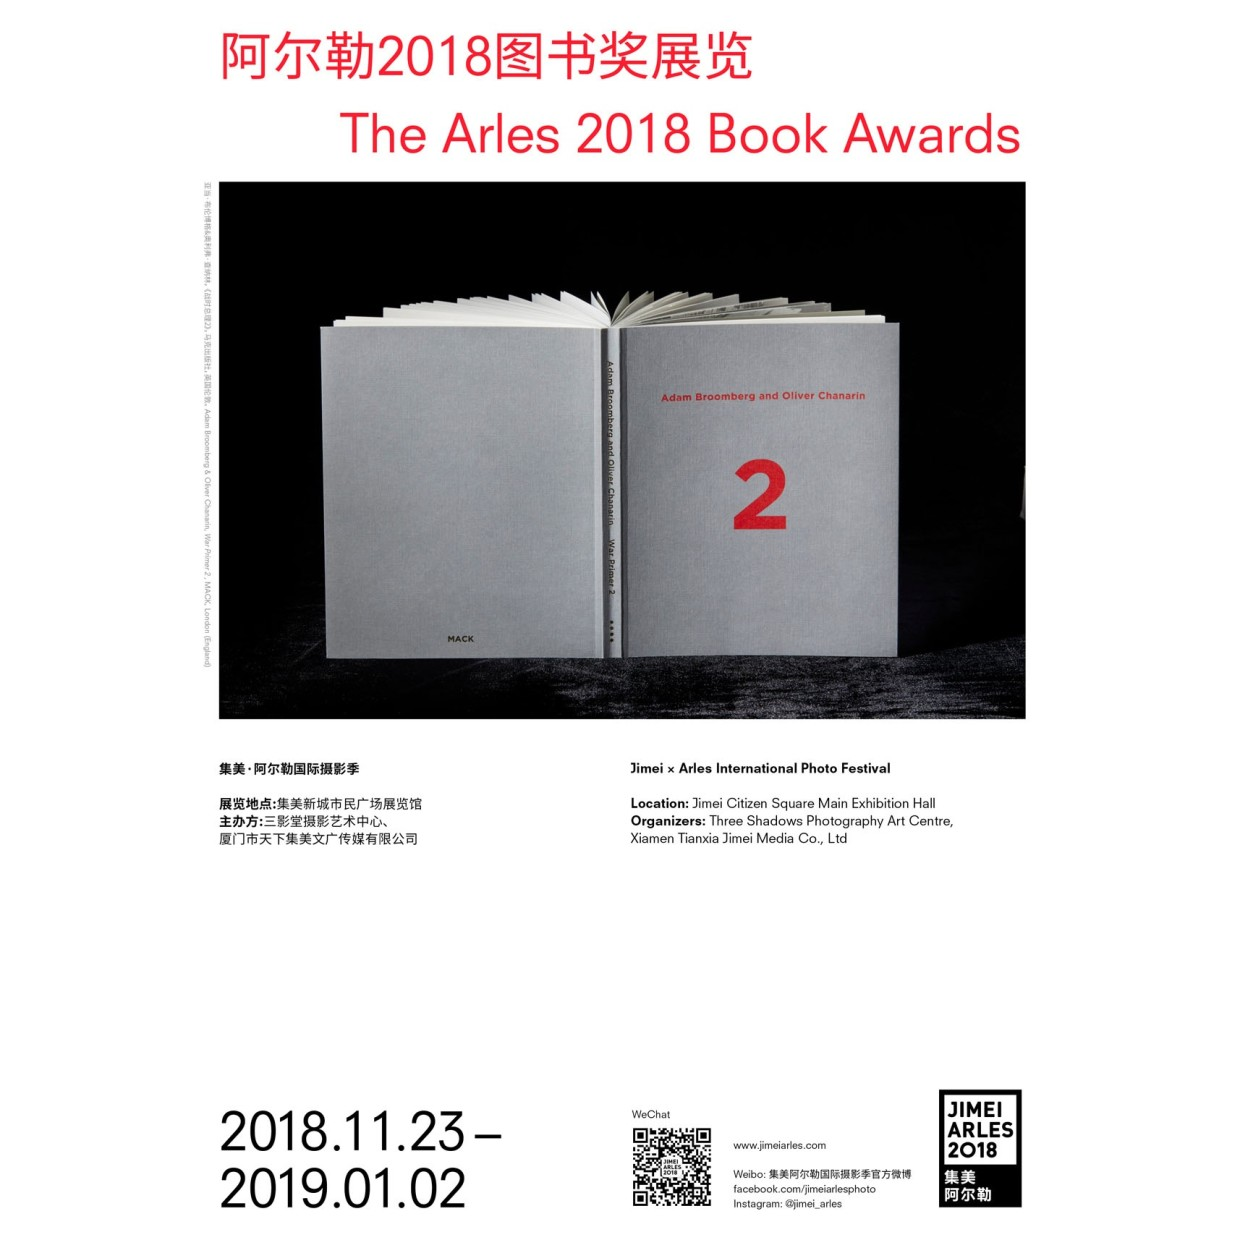 THE ARLES 2018 BOOK AWARDS The Rencontres d'Arles book awards were created 49 years ago, at the same time as...